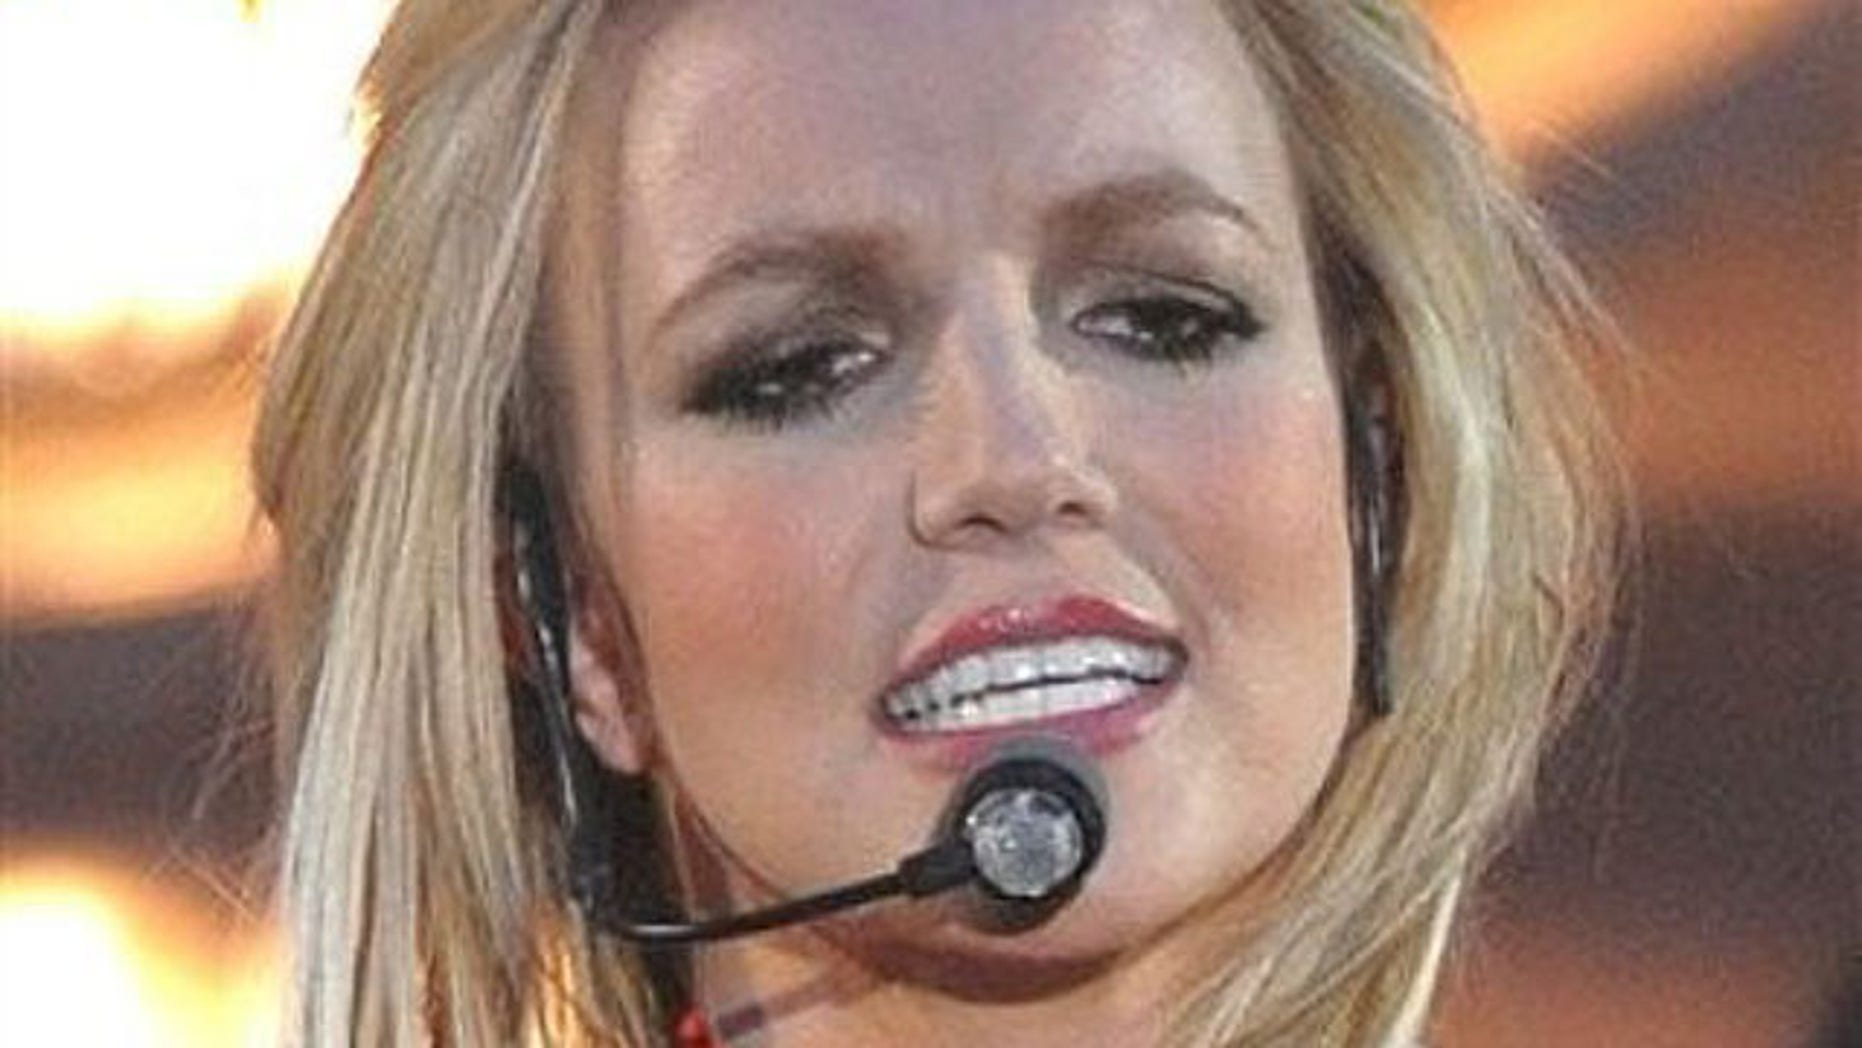 Watch Britney spears close up video